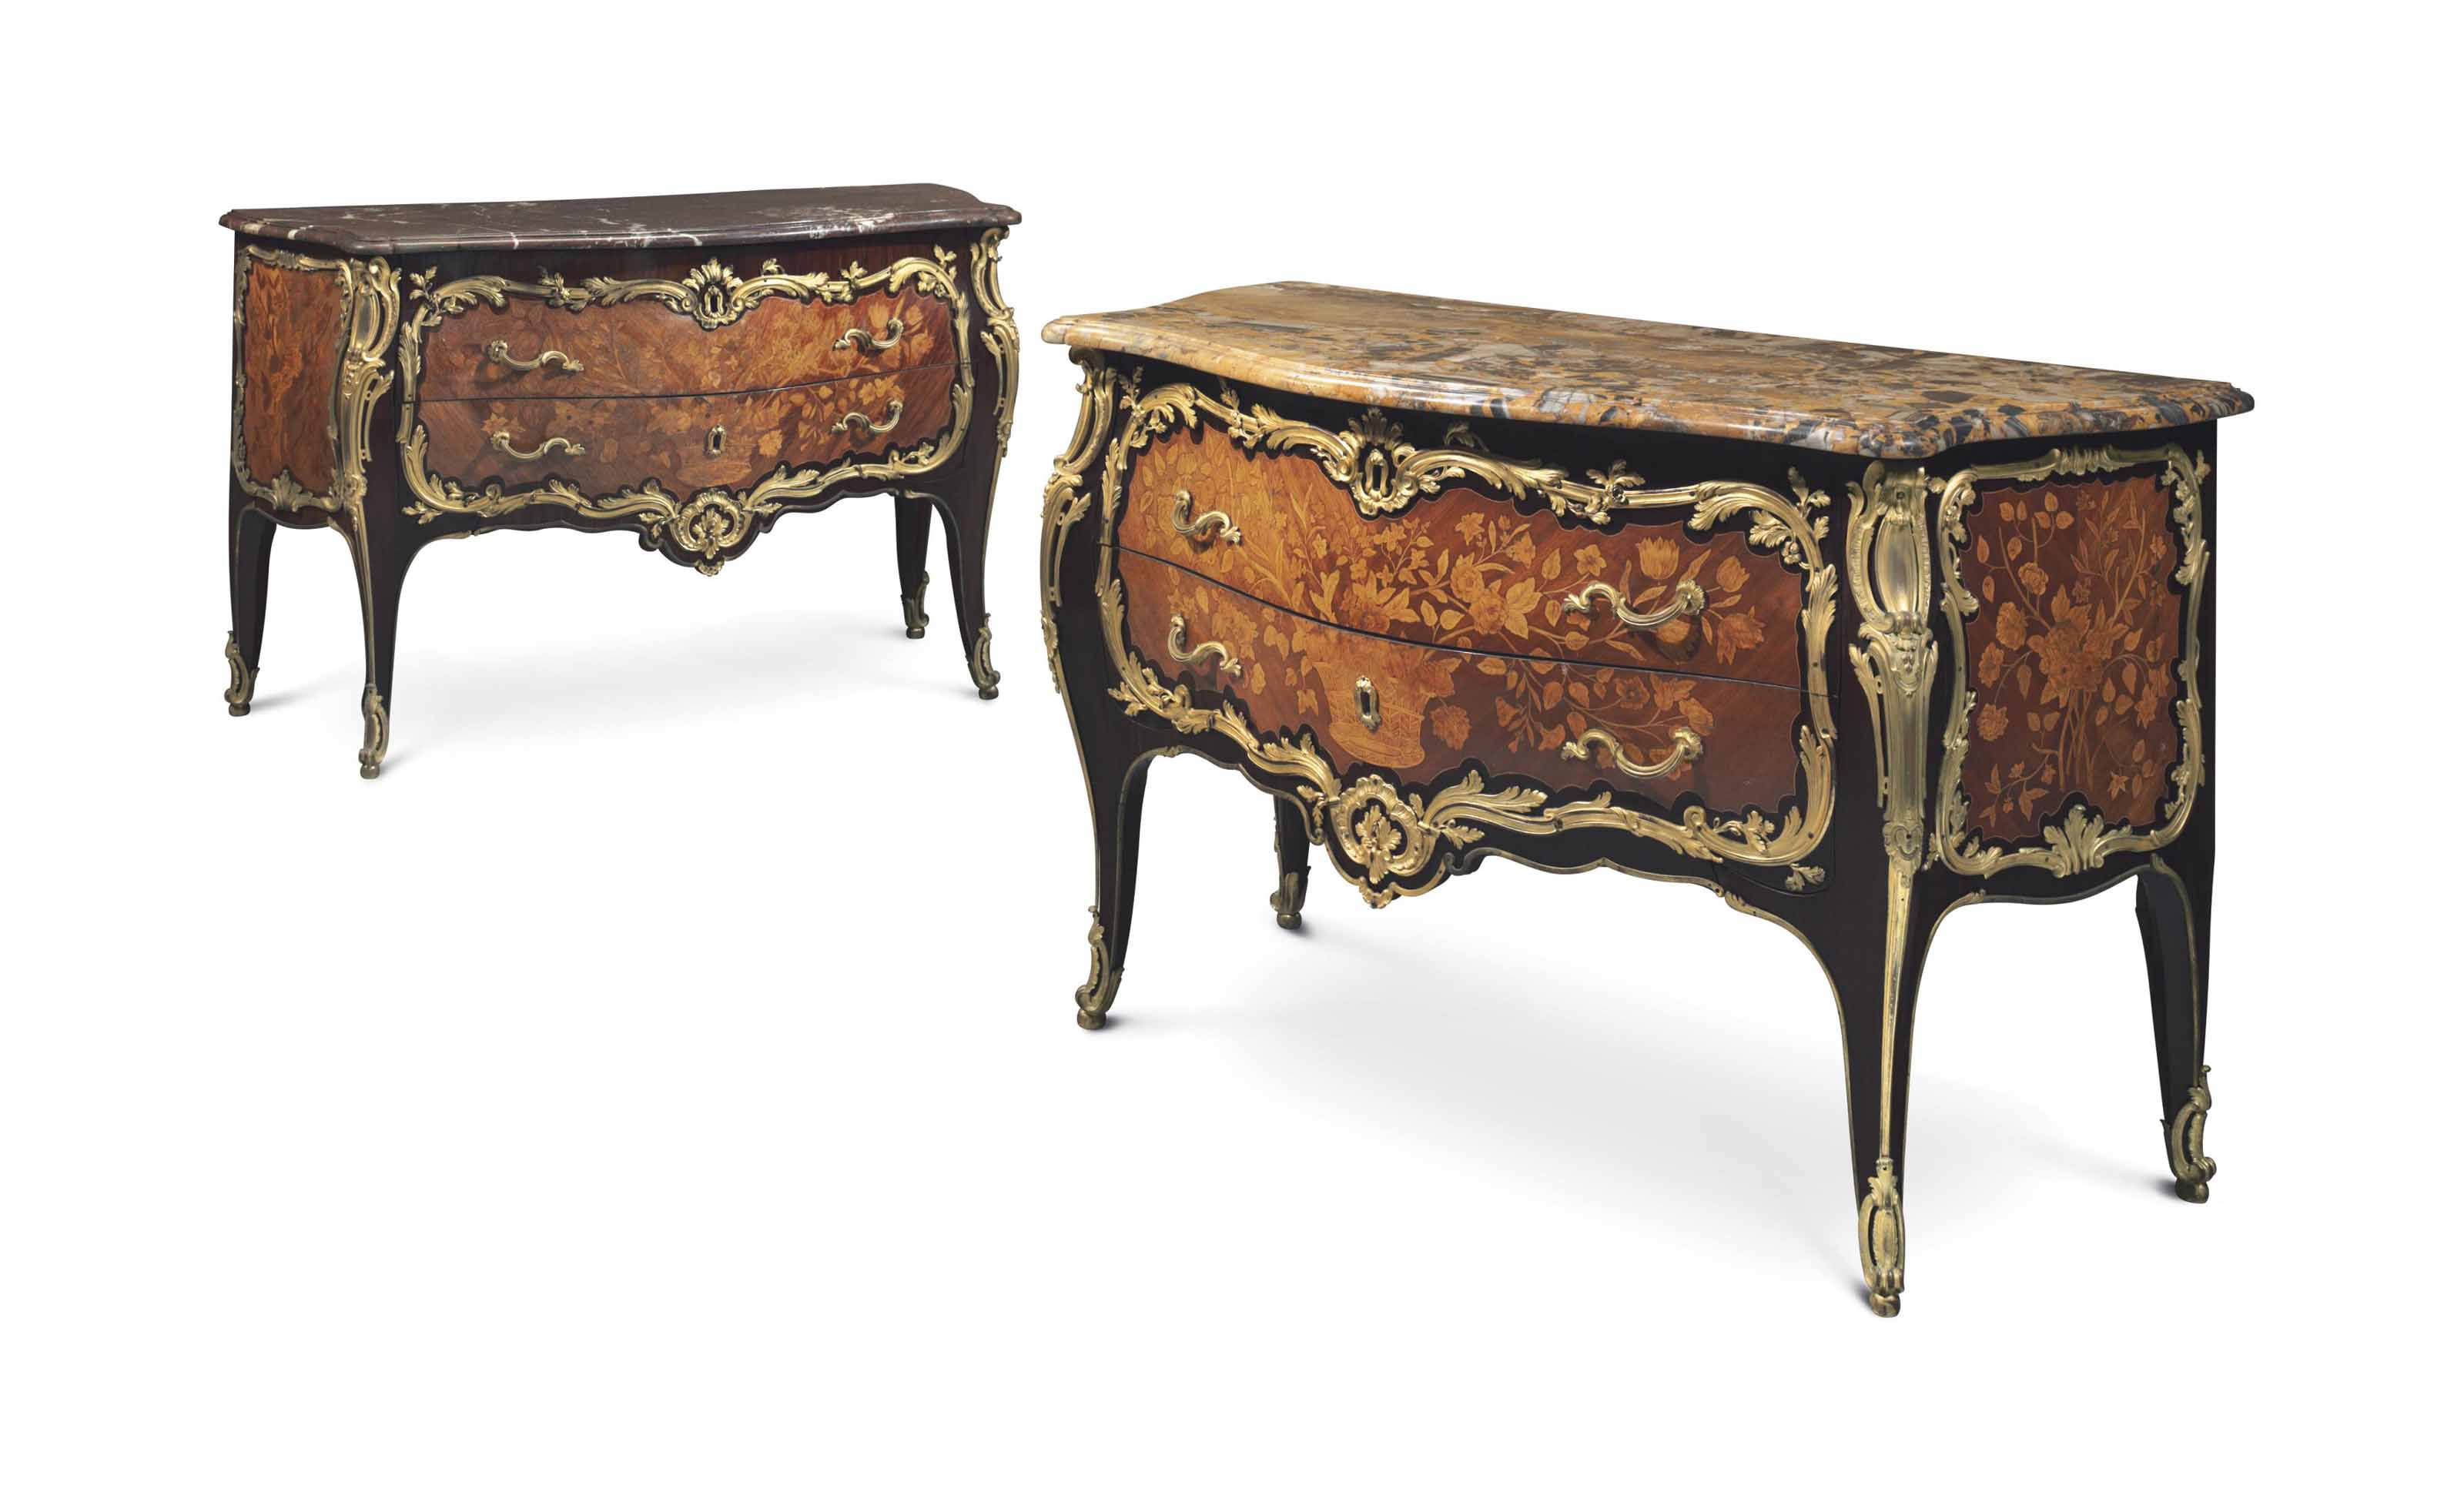 A PAIR OF LOUIS XV ORMOLU-MOUNTED BOIS SATINE, AMARANTH AND MARQUETRY COMMODES